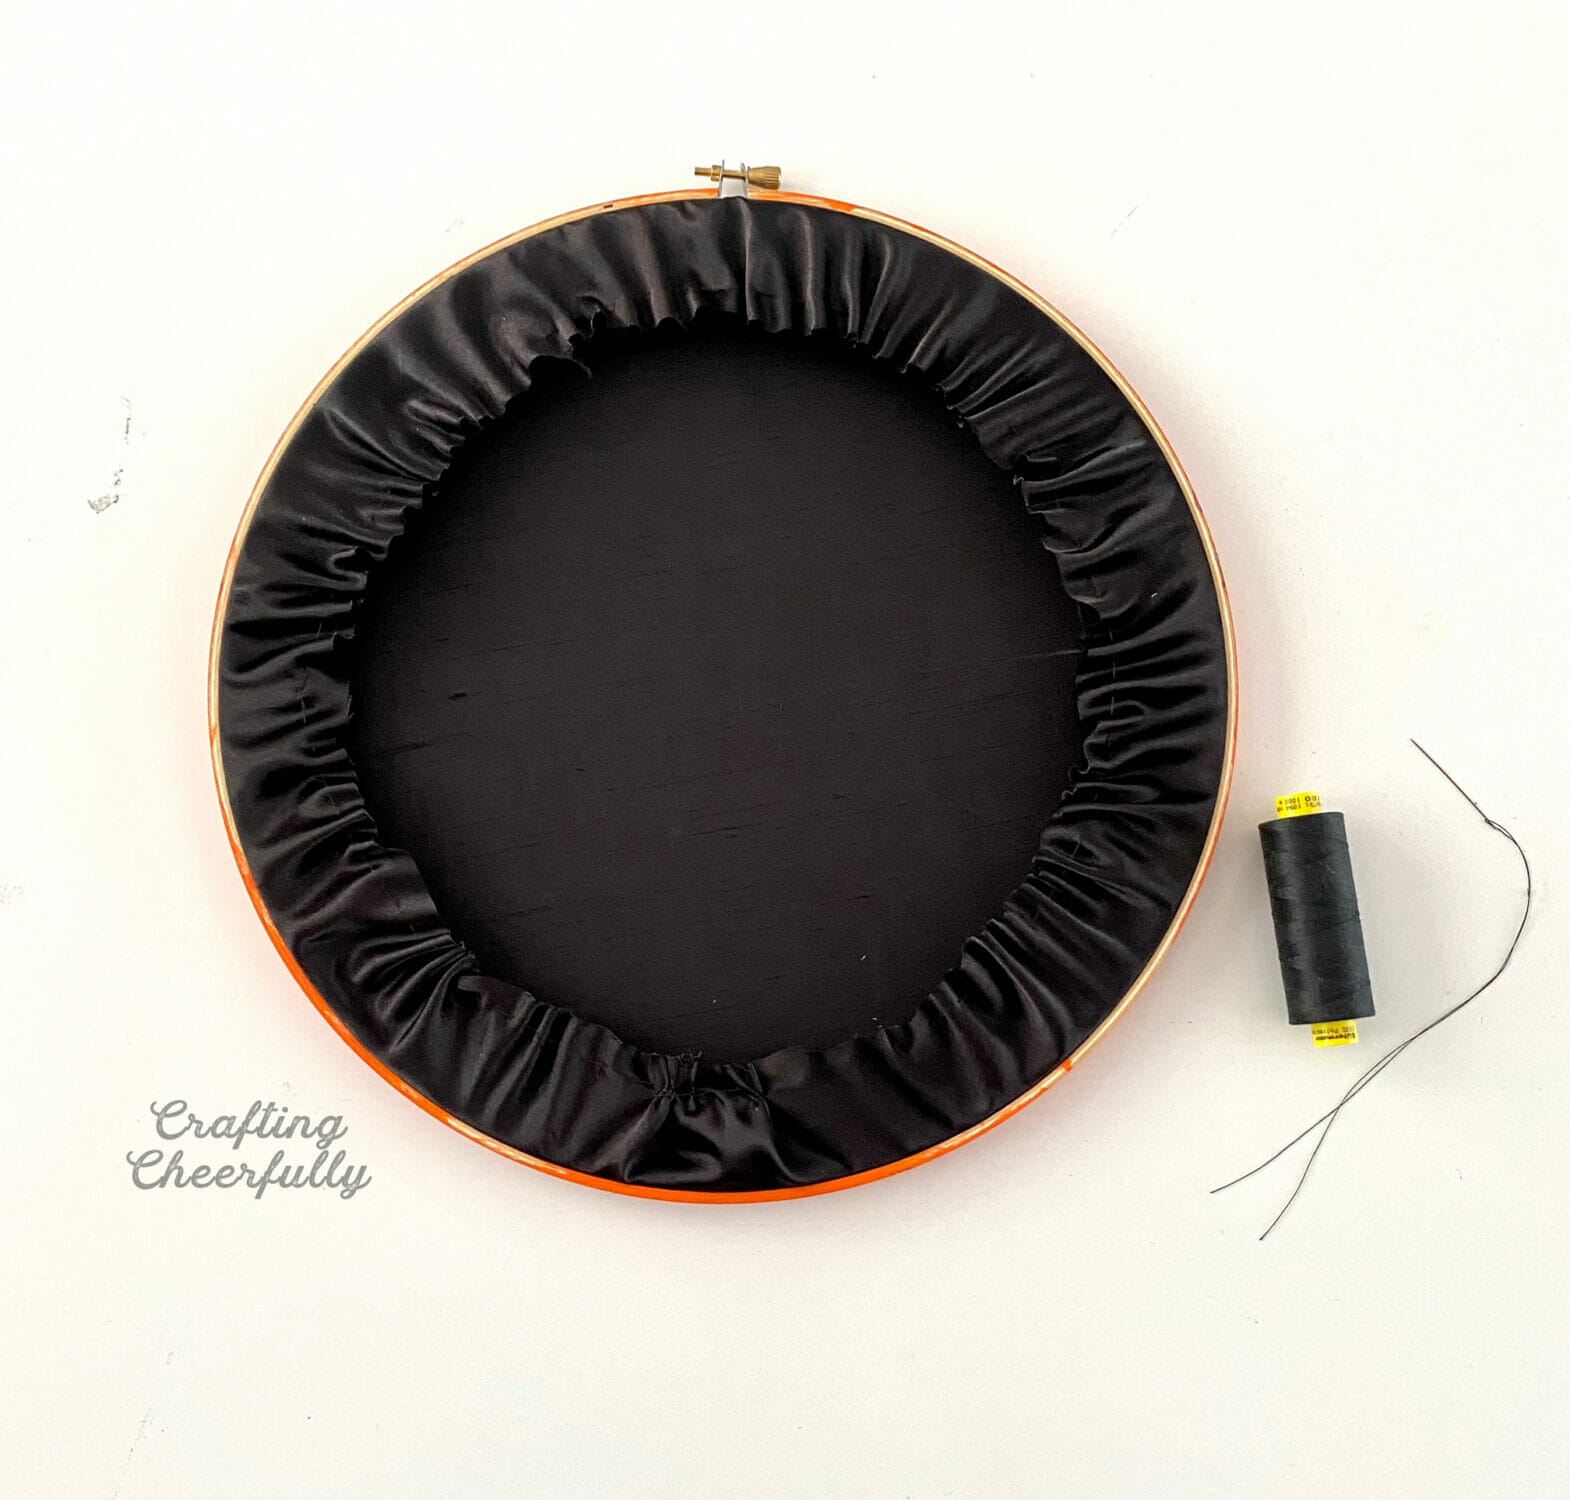 The back of the embroidery hoop showing the black fabric being gathered in.